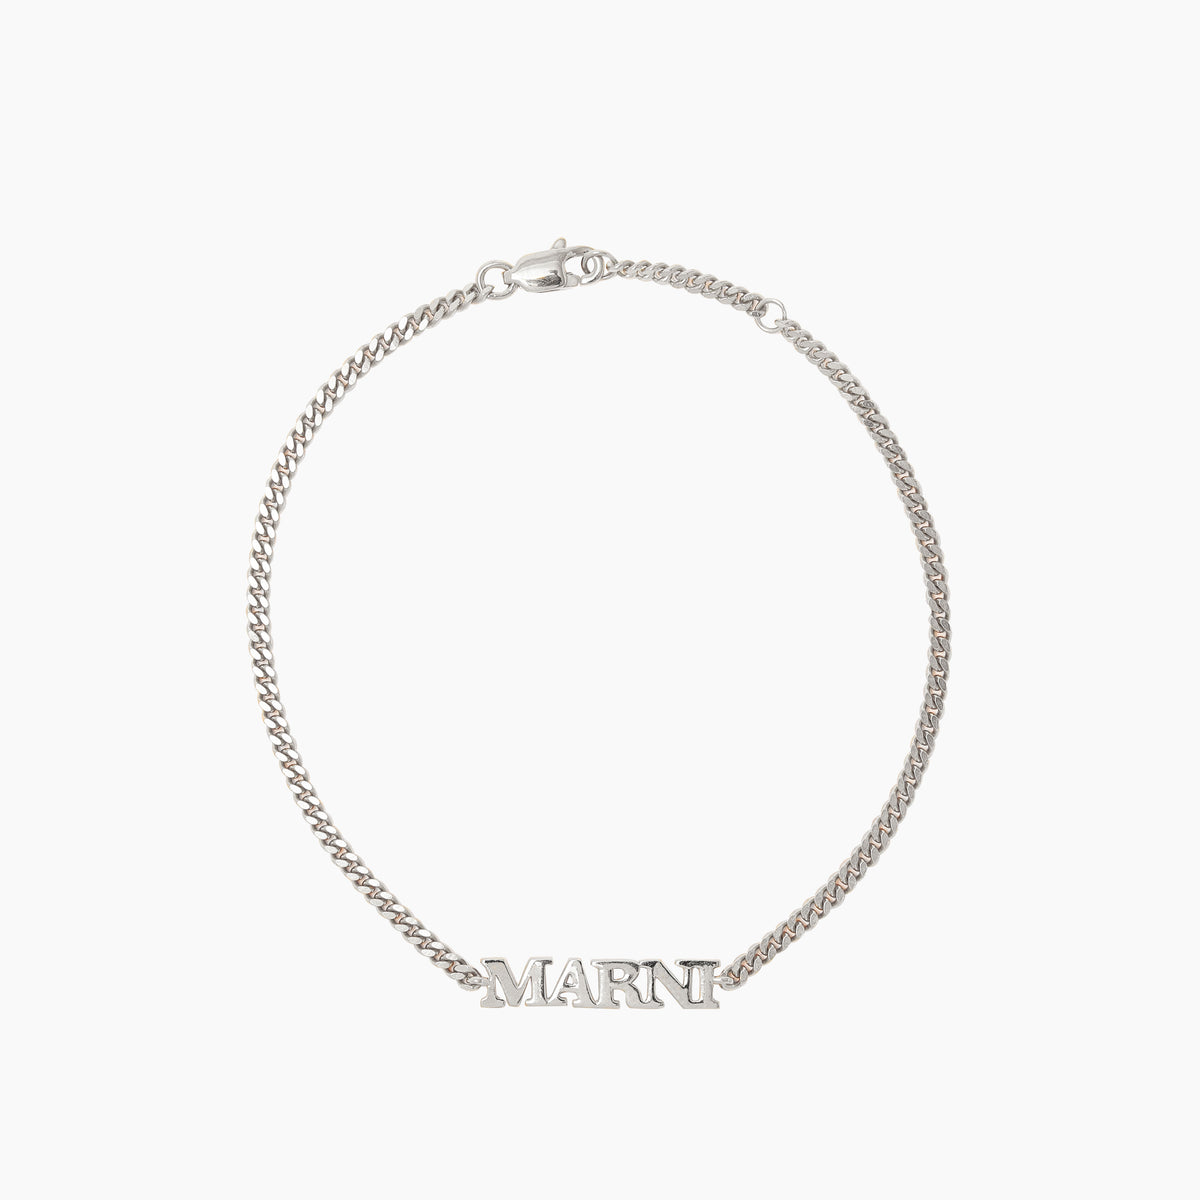 Personalised Name Bracelet (Sterling Silver)